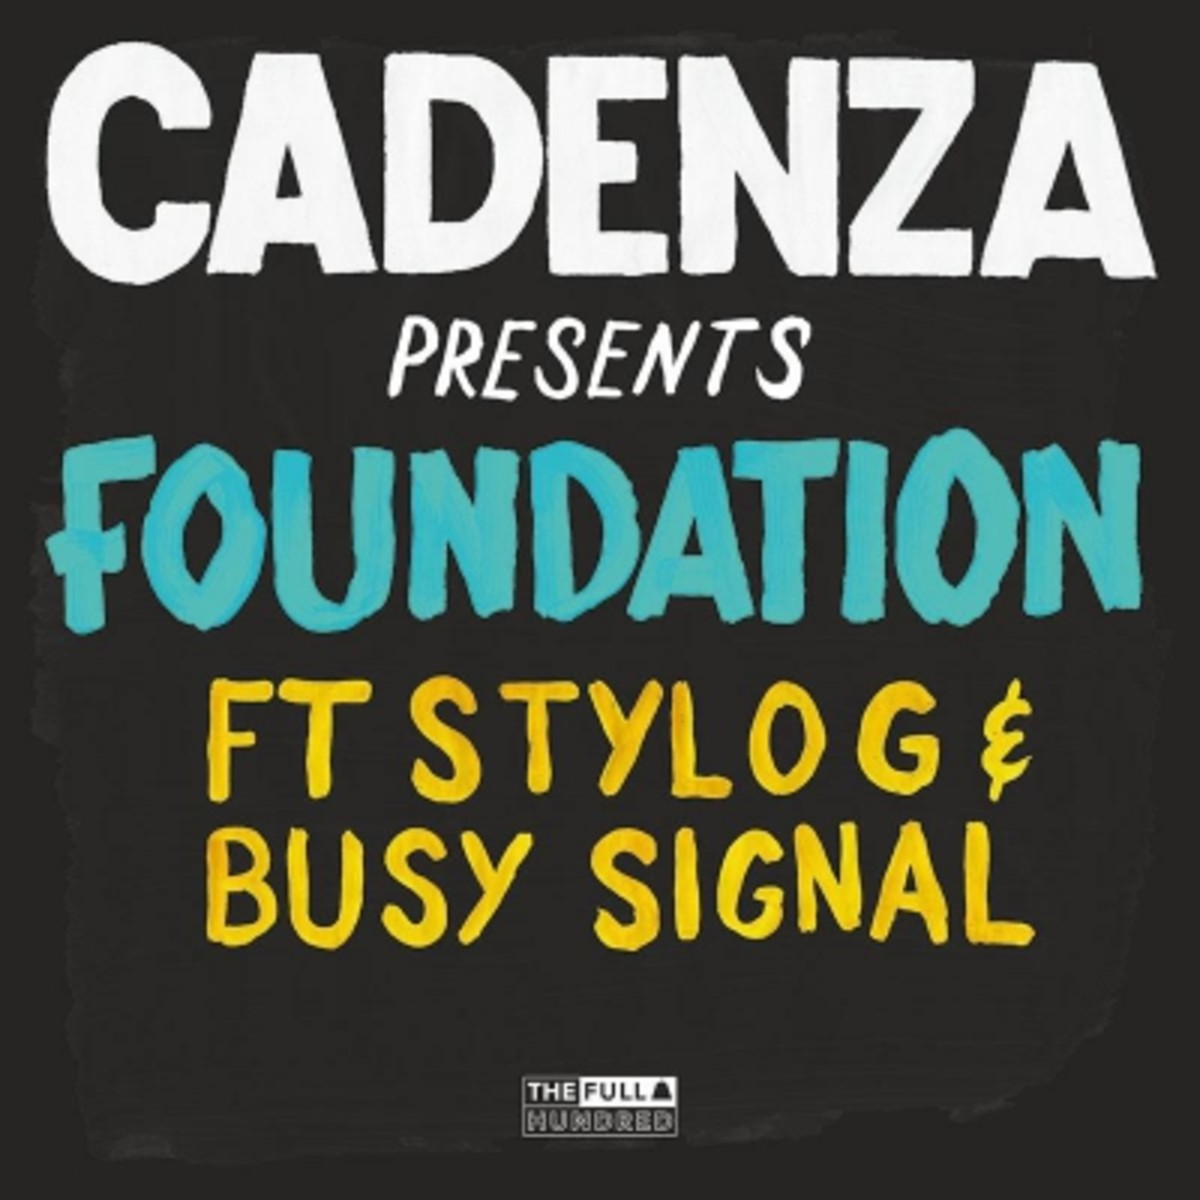 cadenza-foundation.jpg